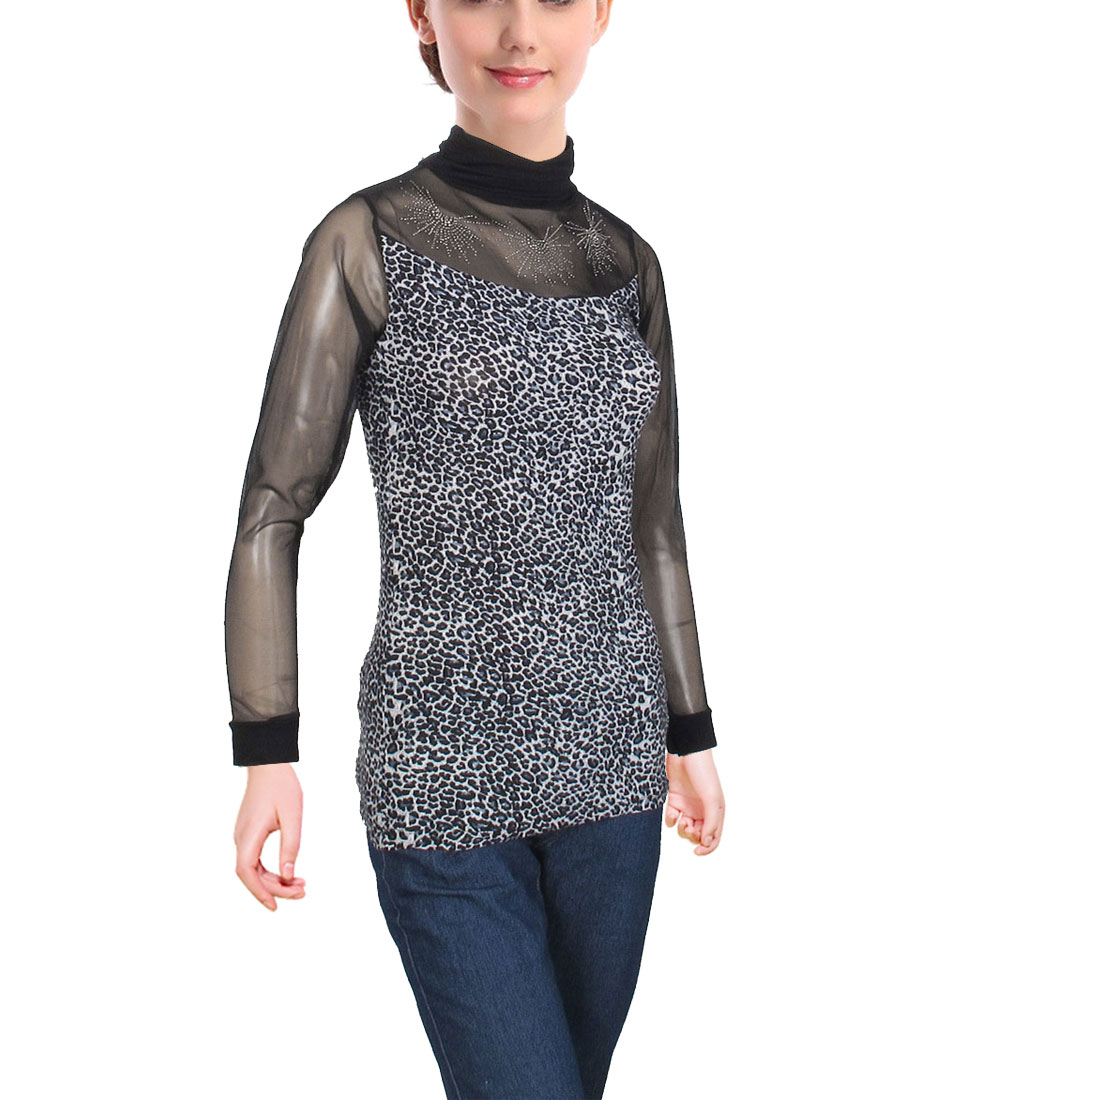 Black See Through Turtle Neck Long Sleeve Shirt Tops for Ladies XS